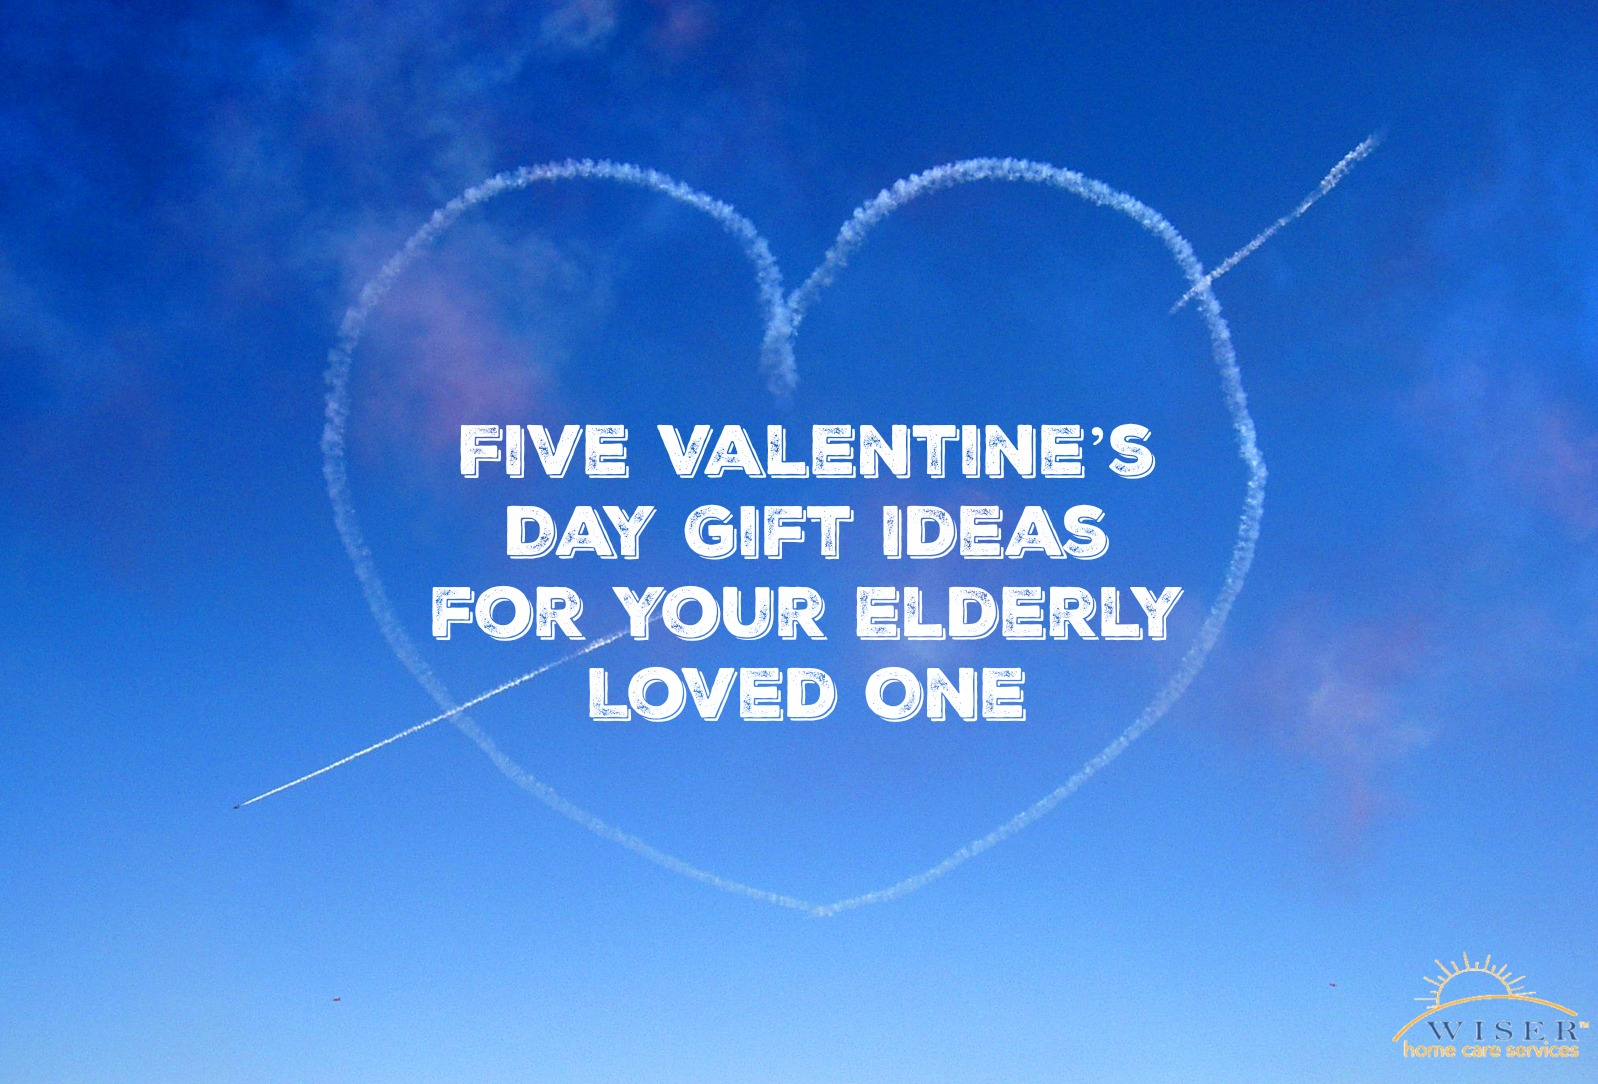 Valentine's Day is right around the corner. If you're having trouble finding a Valentine's day gift for your elderly loved one we have some great ideas.